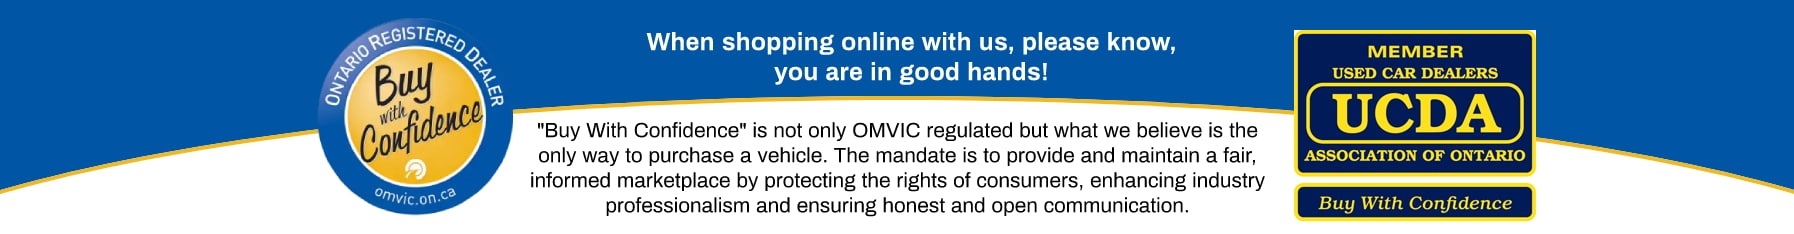 Ontario Vehicle Sales Regulator - Buy with Confidence